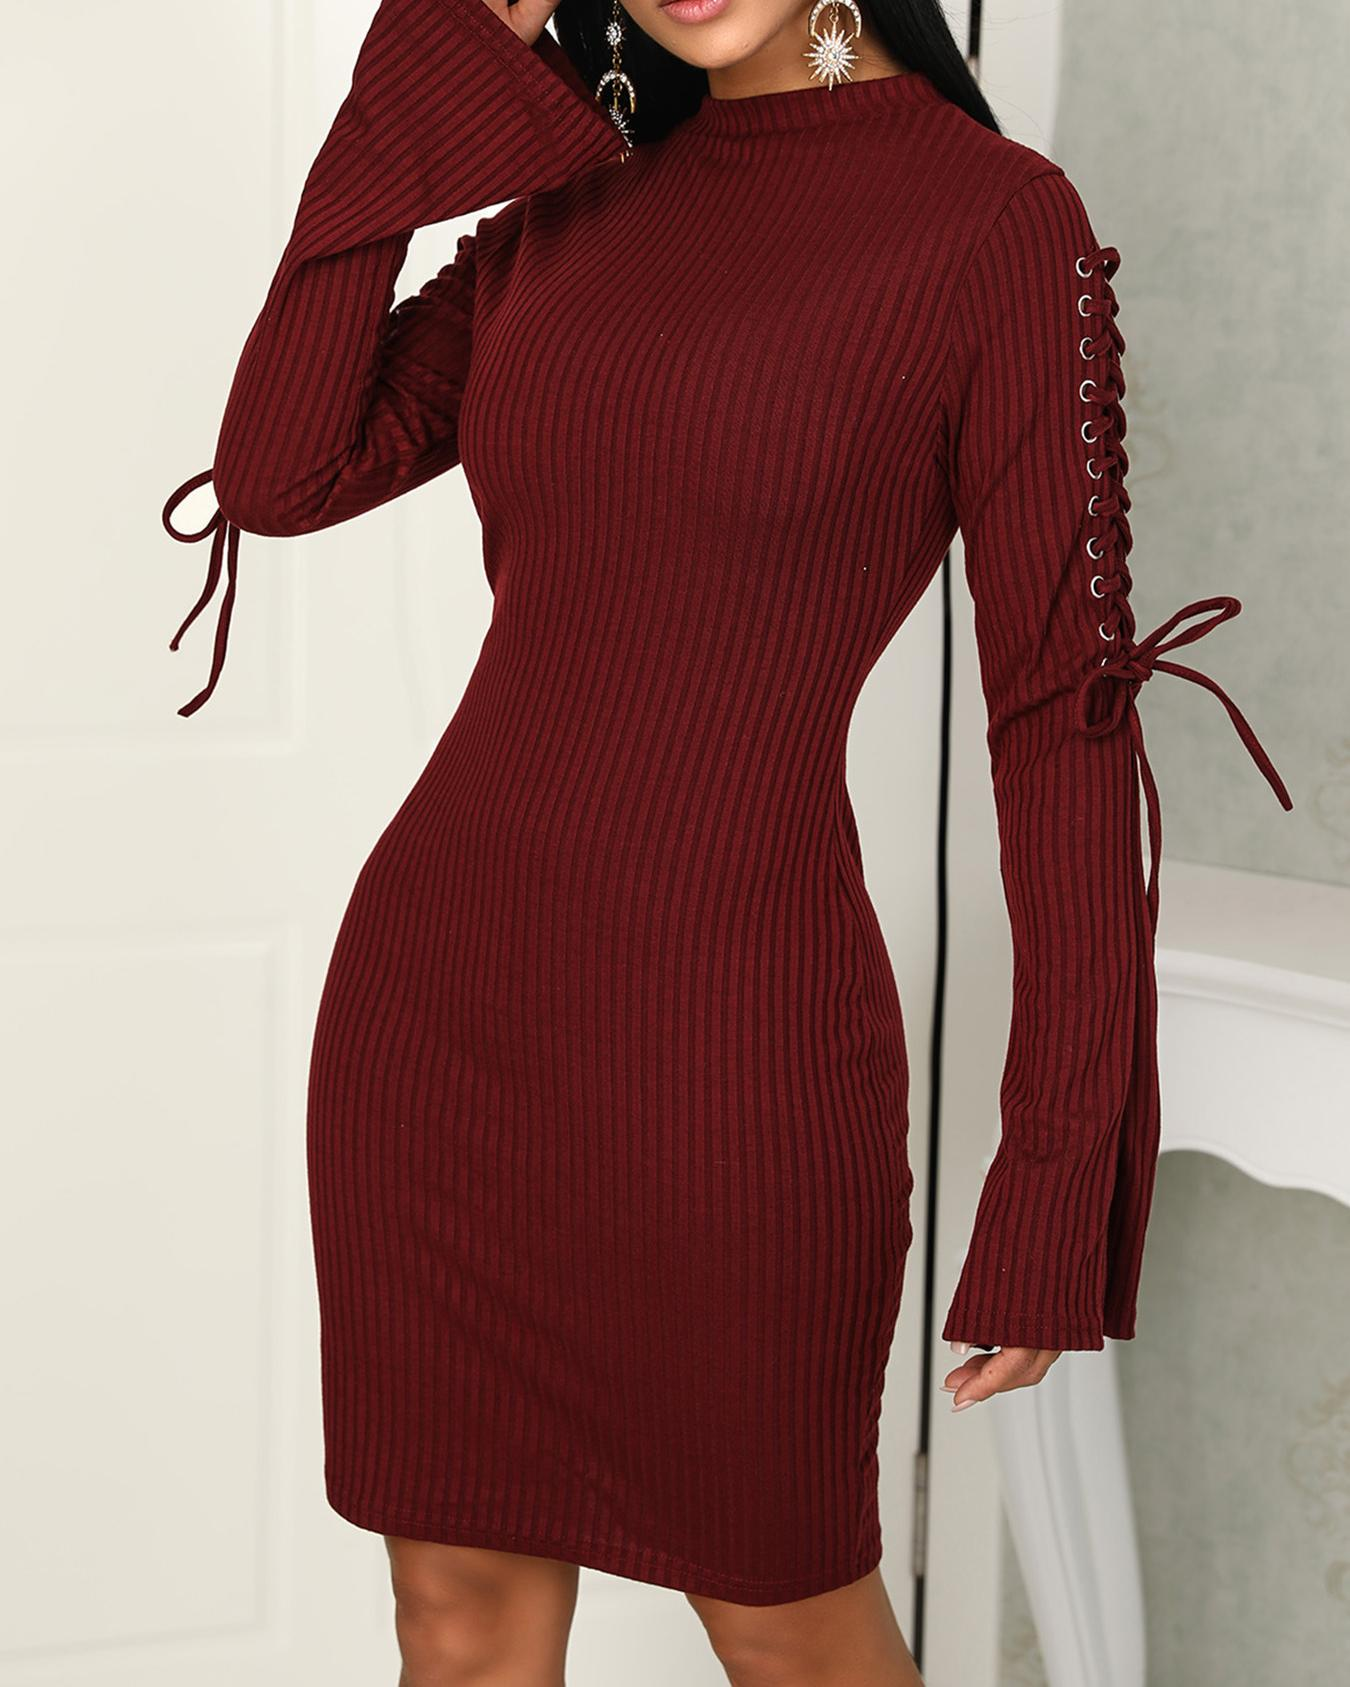 Solid Lace-Up Eyelet Flared Sleeve Bodycon Dress фото